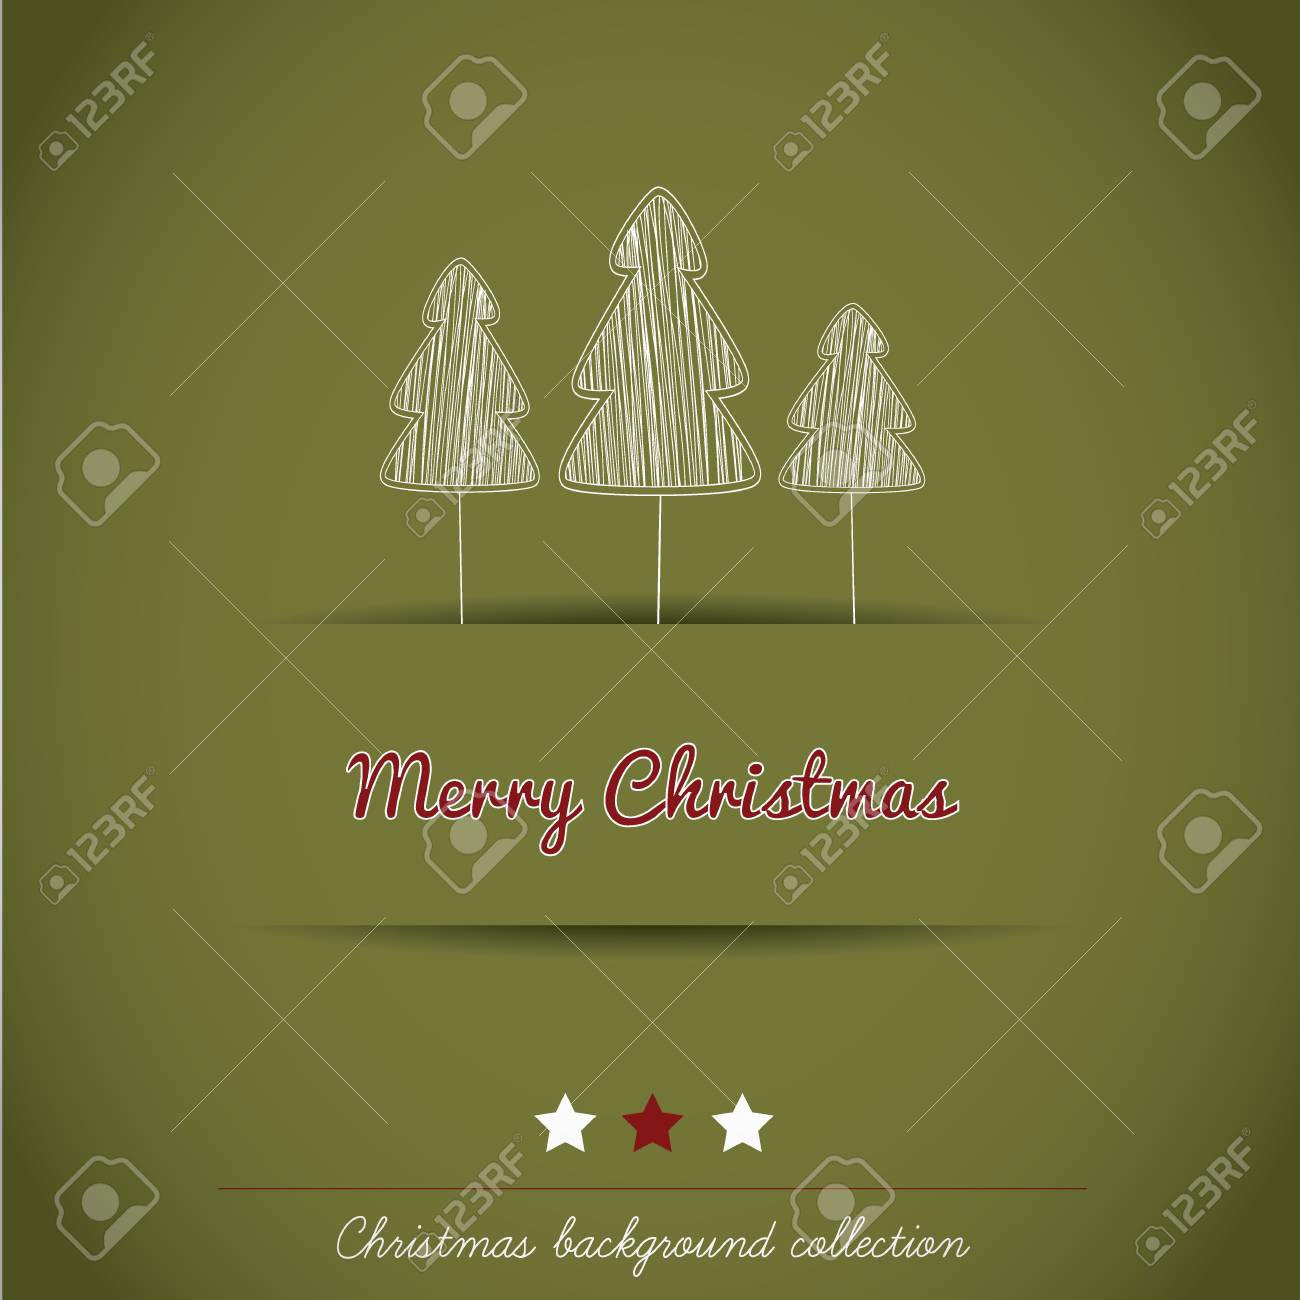 Christmas background collection Stock Vector - 16247355